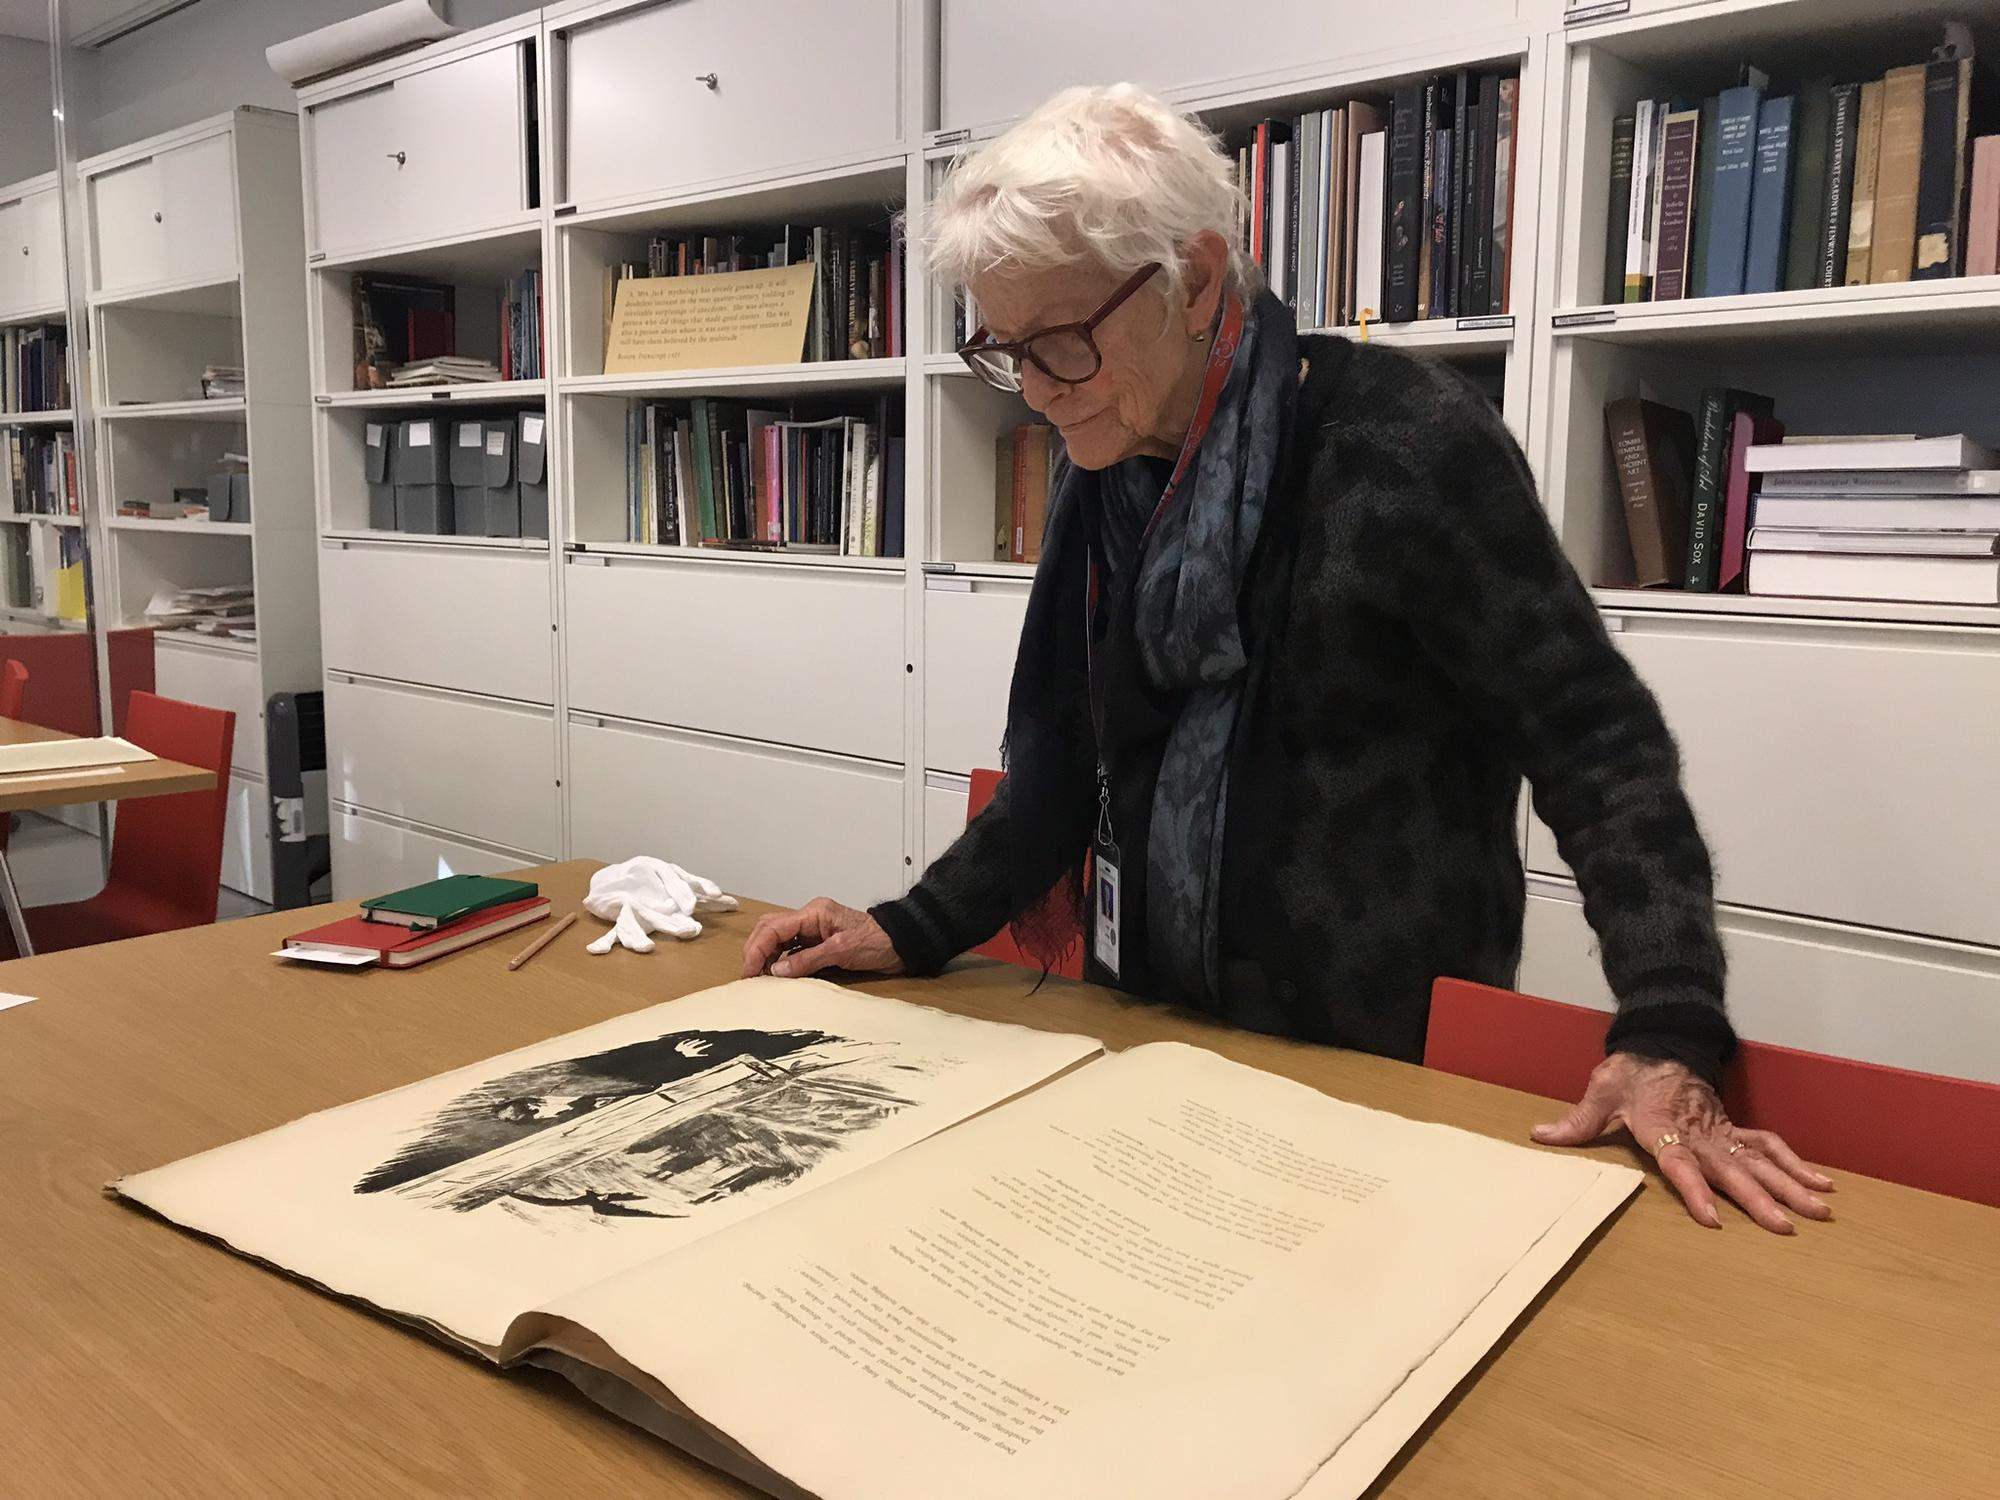 Joan Jonas looking at a special printed portfolio of The Raven by Edgar Allan Poe, with illustrations by Édouard Manet, published in Paris, 1875.